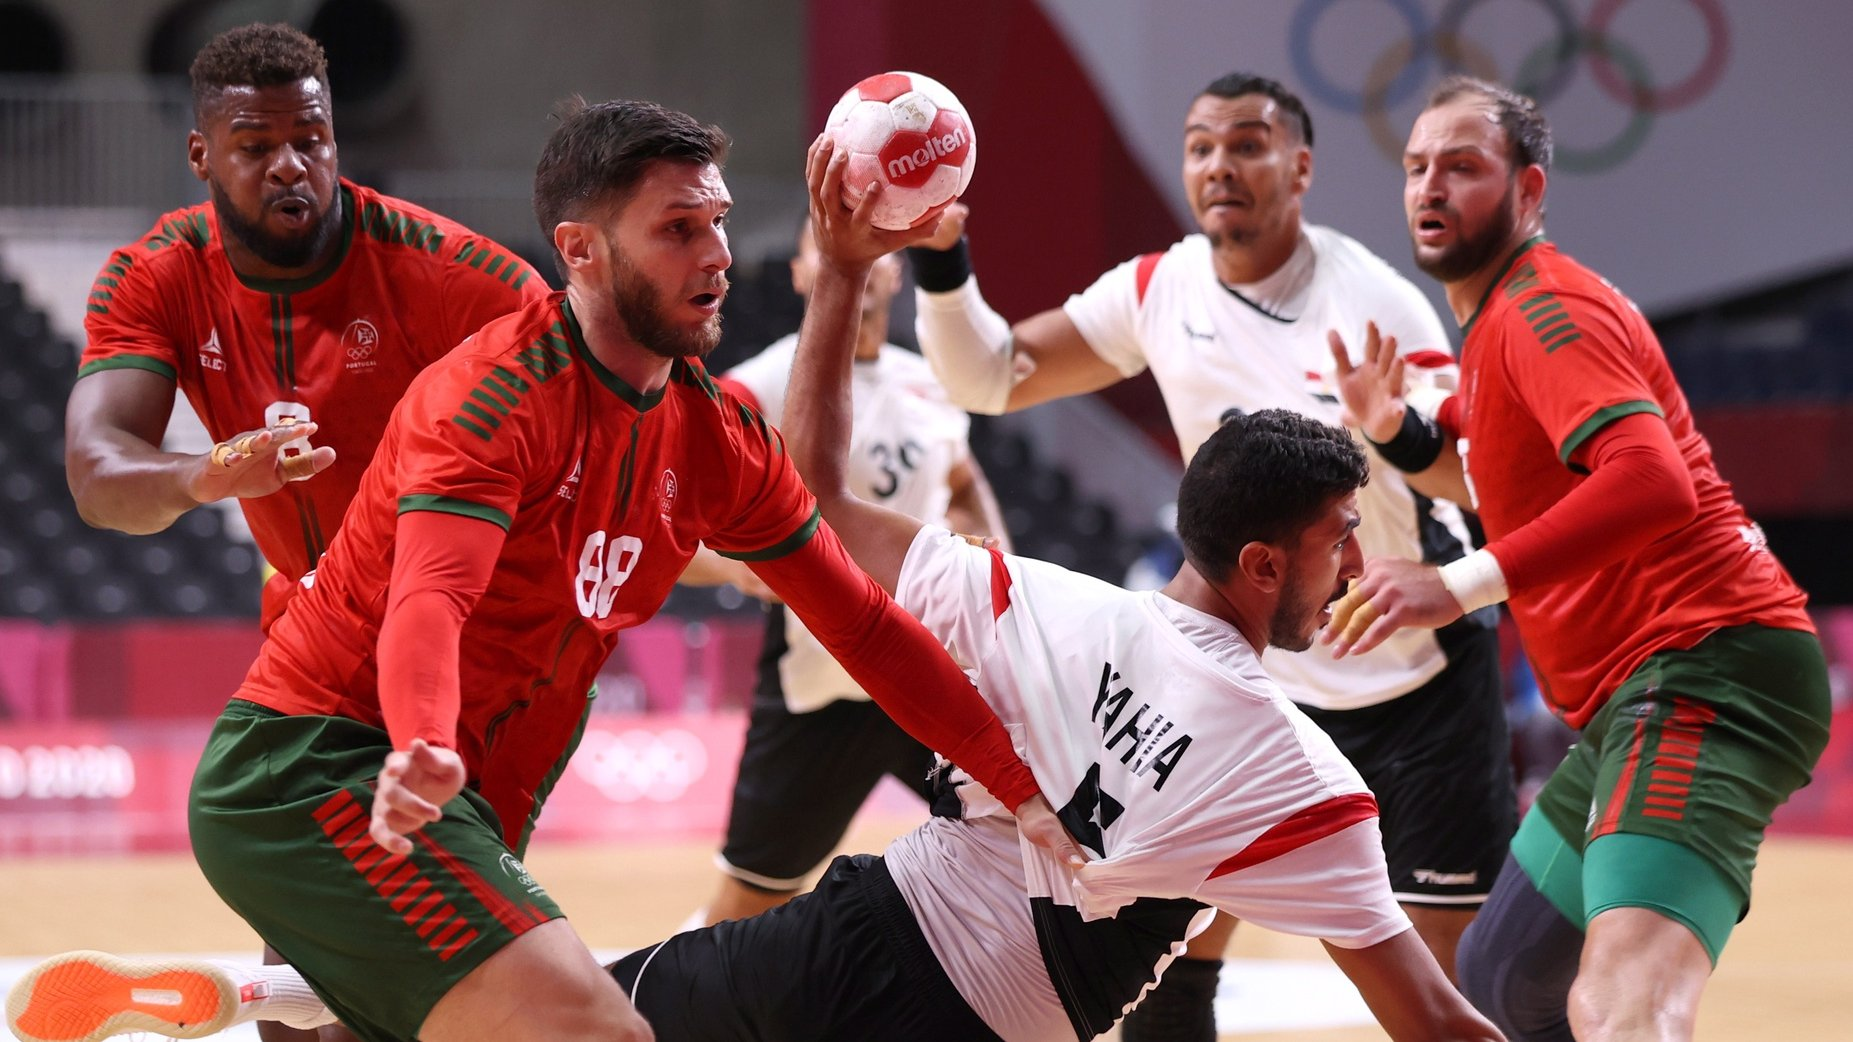 epa09361831 Yahia Omar (C) of Egypt in action against Fabio Magalhaes (2-L) of Portugal during the Men's Preliminary Round Group B match between Portugal and Egypt during the Handball events of the Tokyo 2020 Olympic Games at the Yoyogi National Gymnasium arena in Tokyo, Japan, 24 July 2021.  EPA/WU HONG